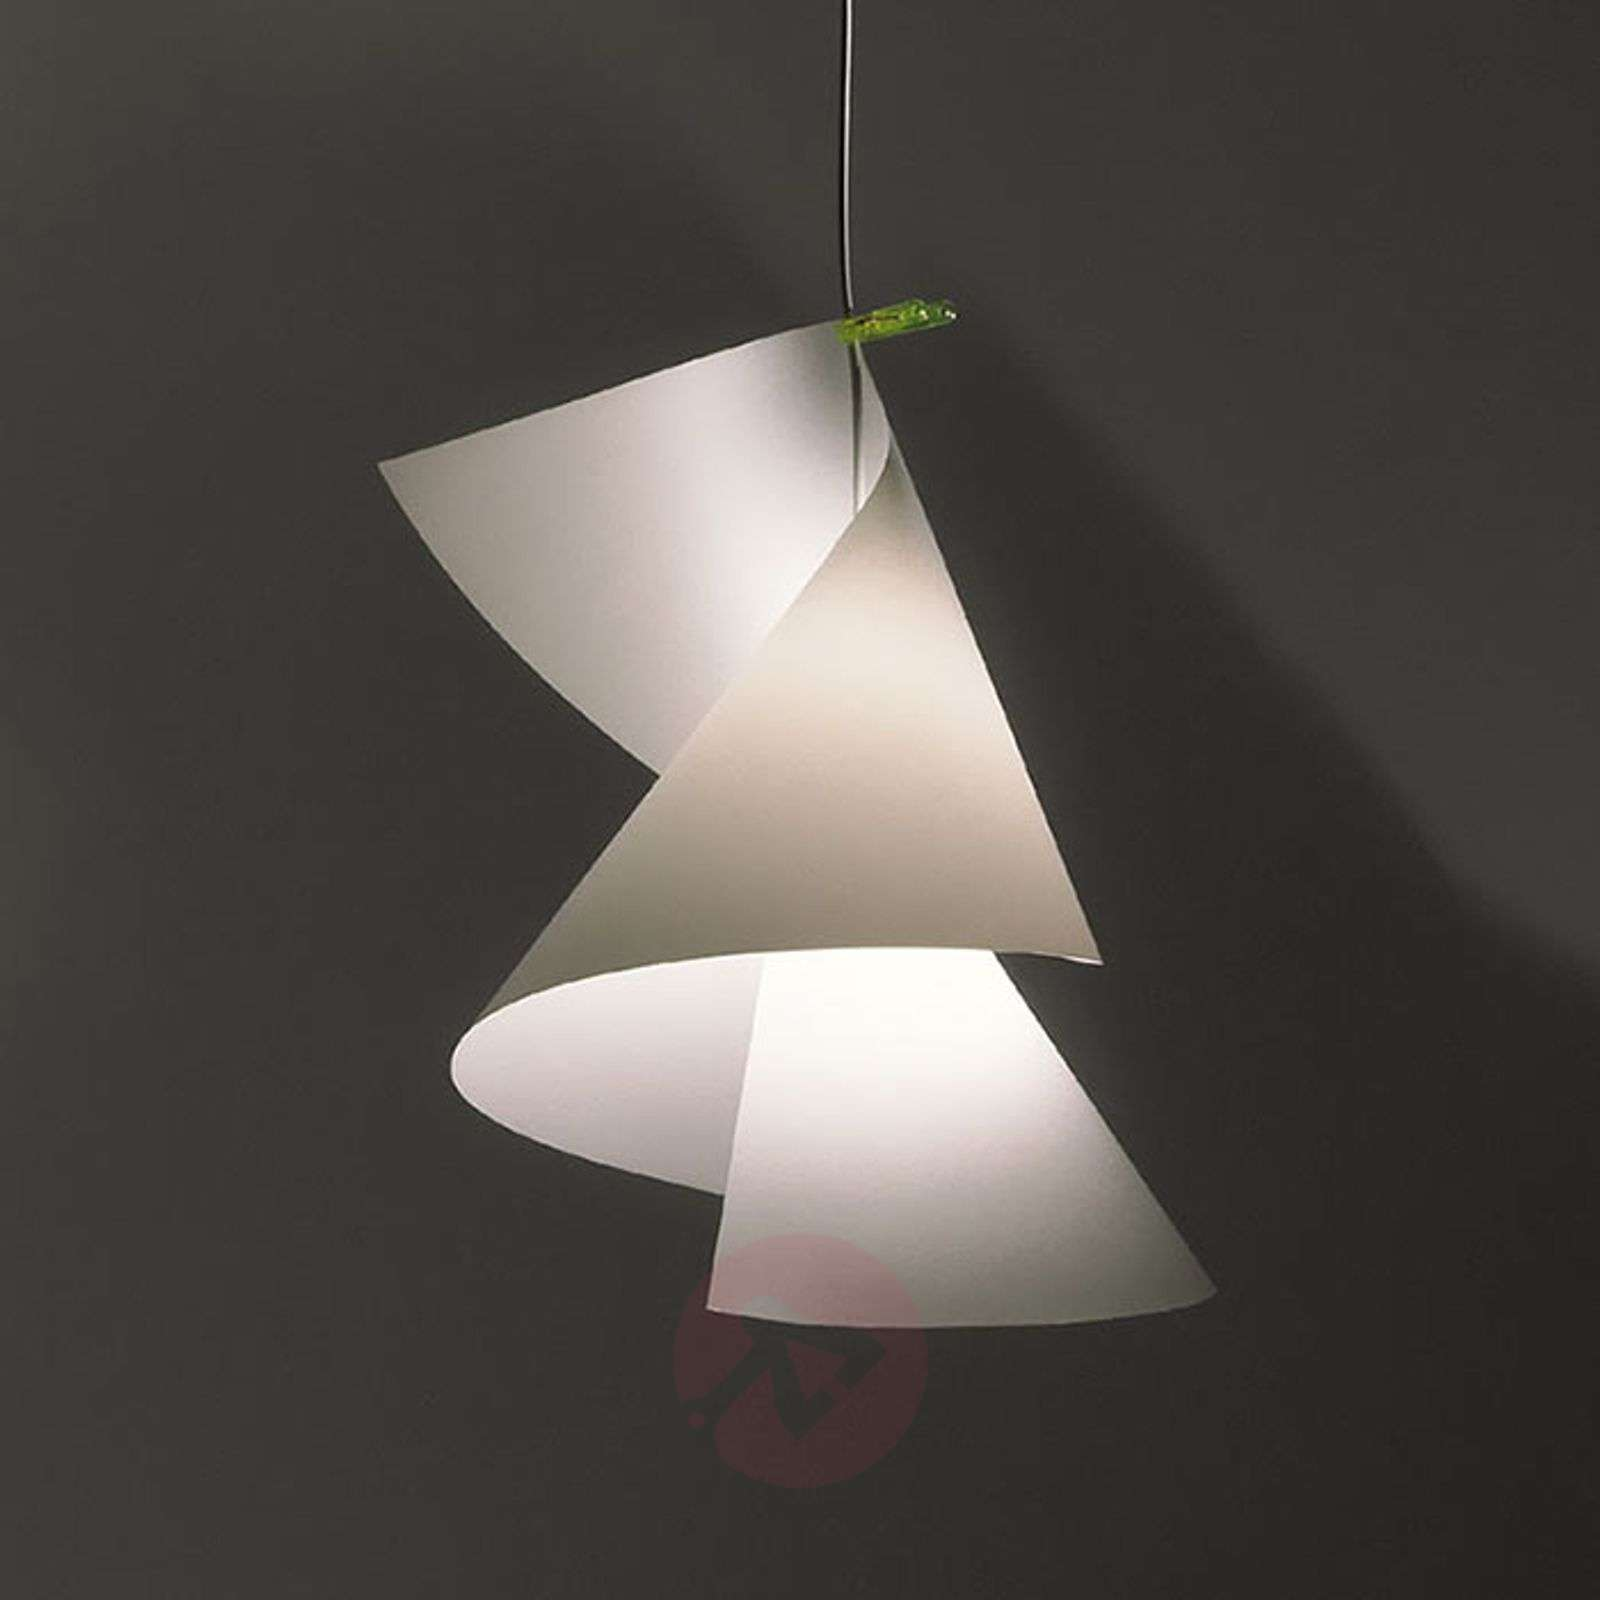 Hanging light Willydilly, variable lampshade shape-5026054-03